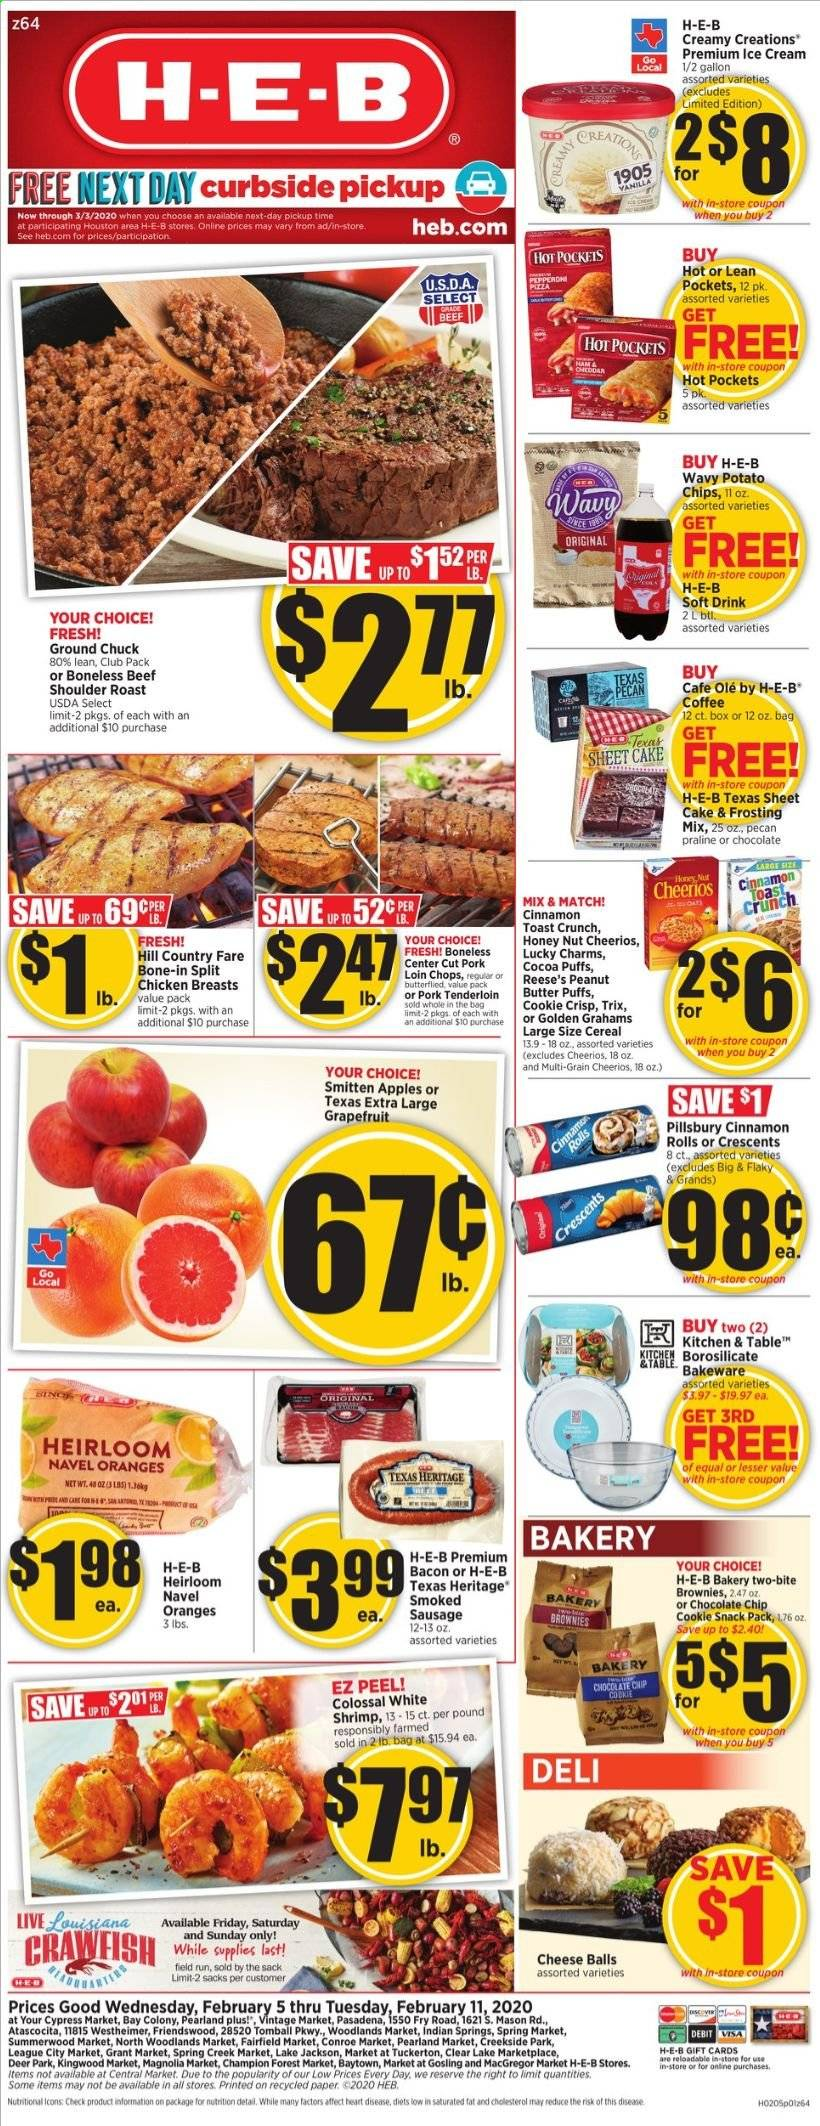 H-E-B Flyer  - 02.05.2020 - 02.11.2020. Page 1.